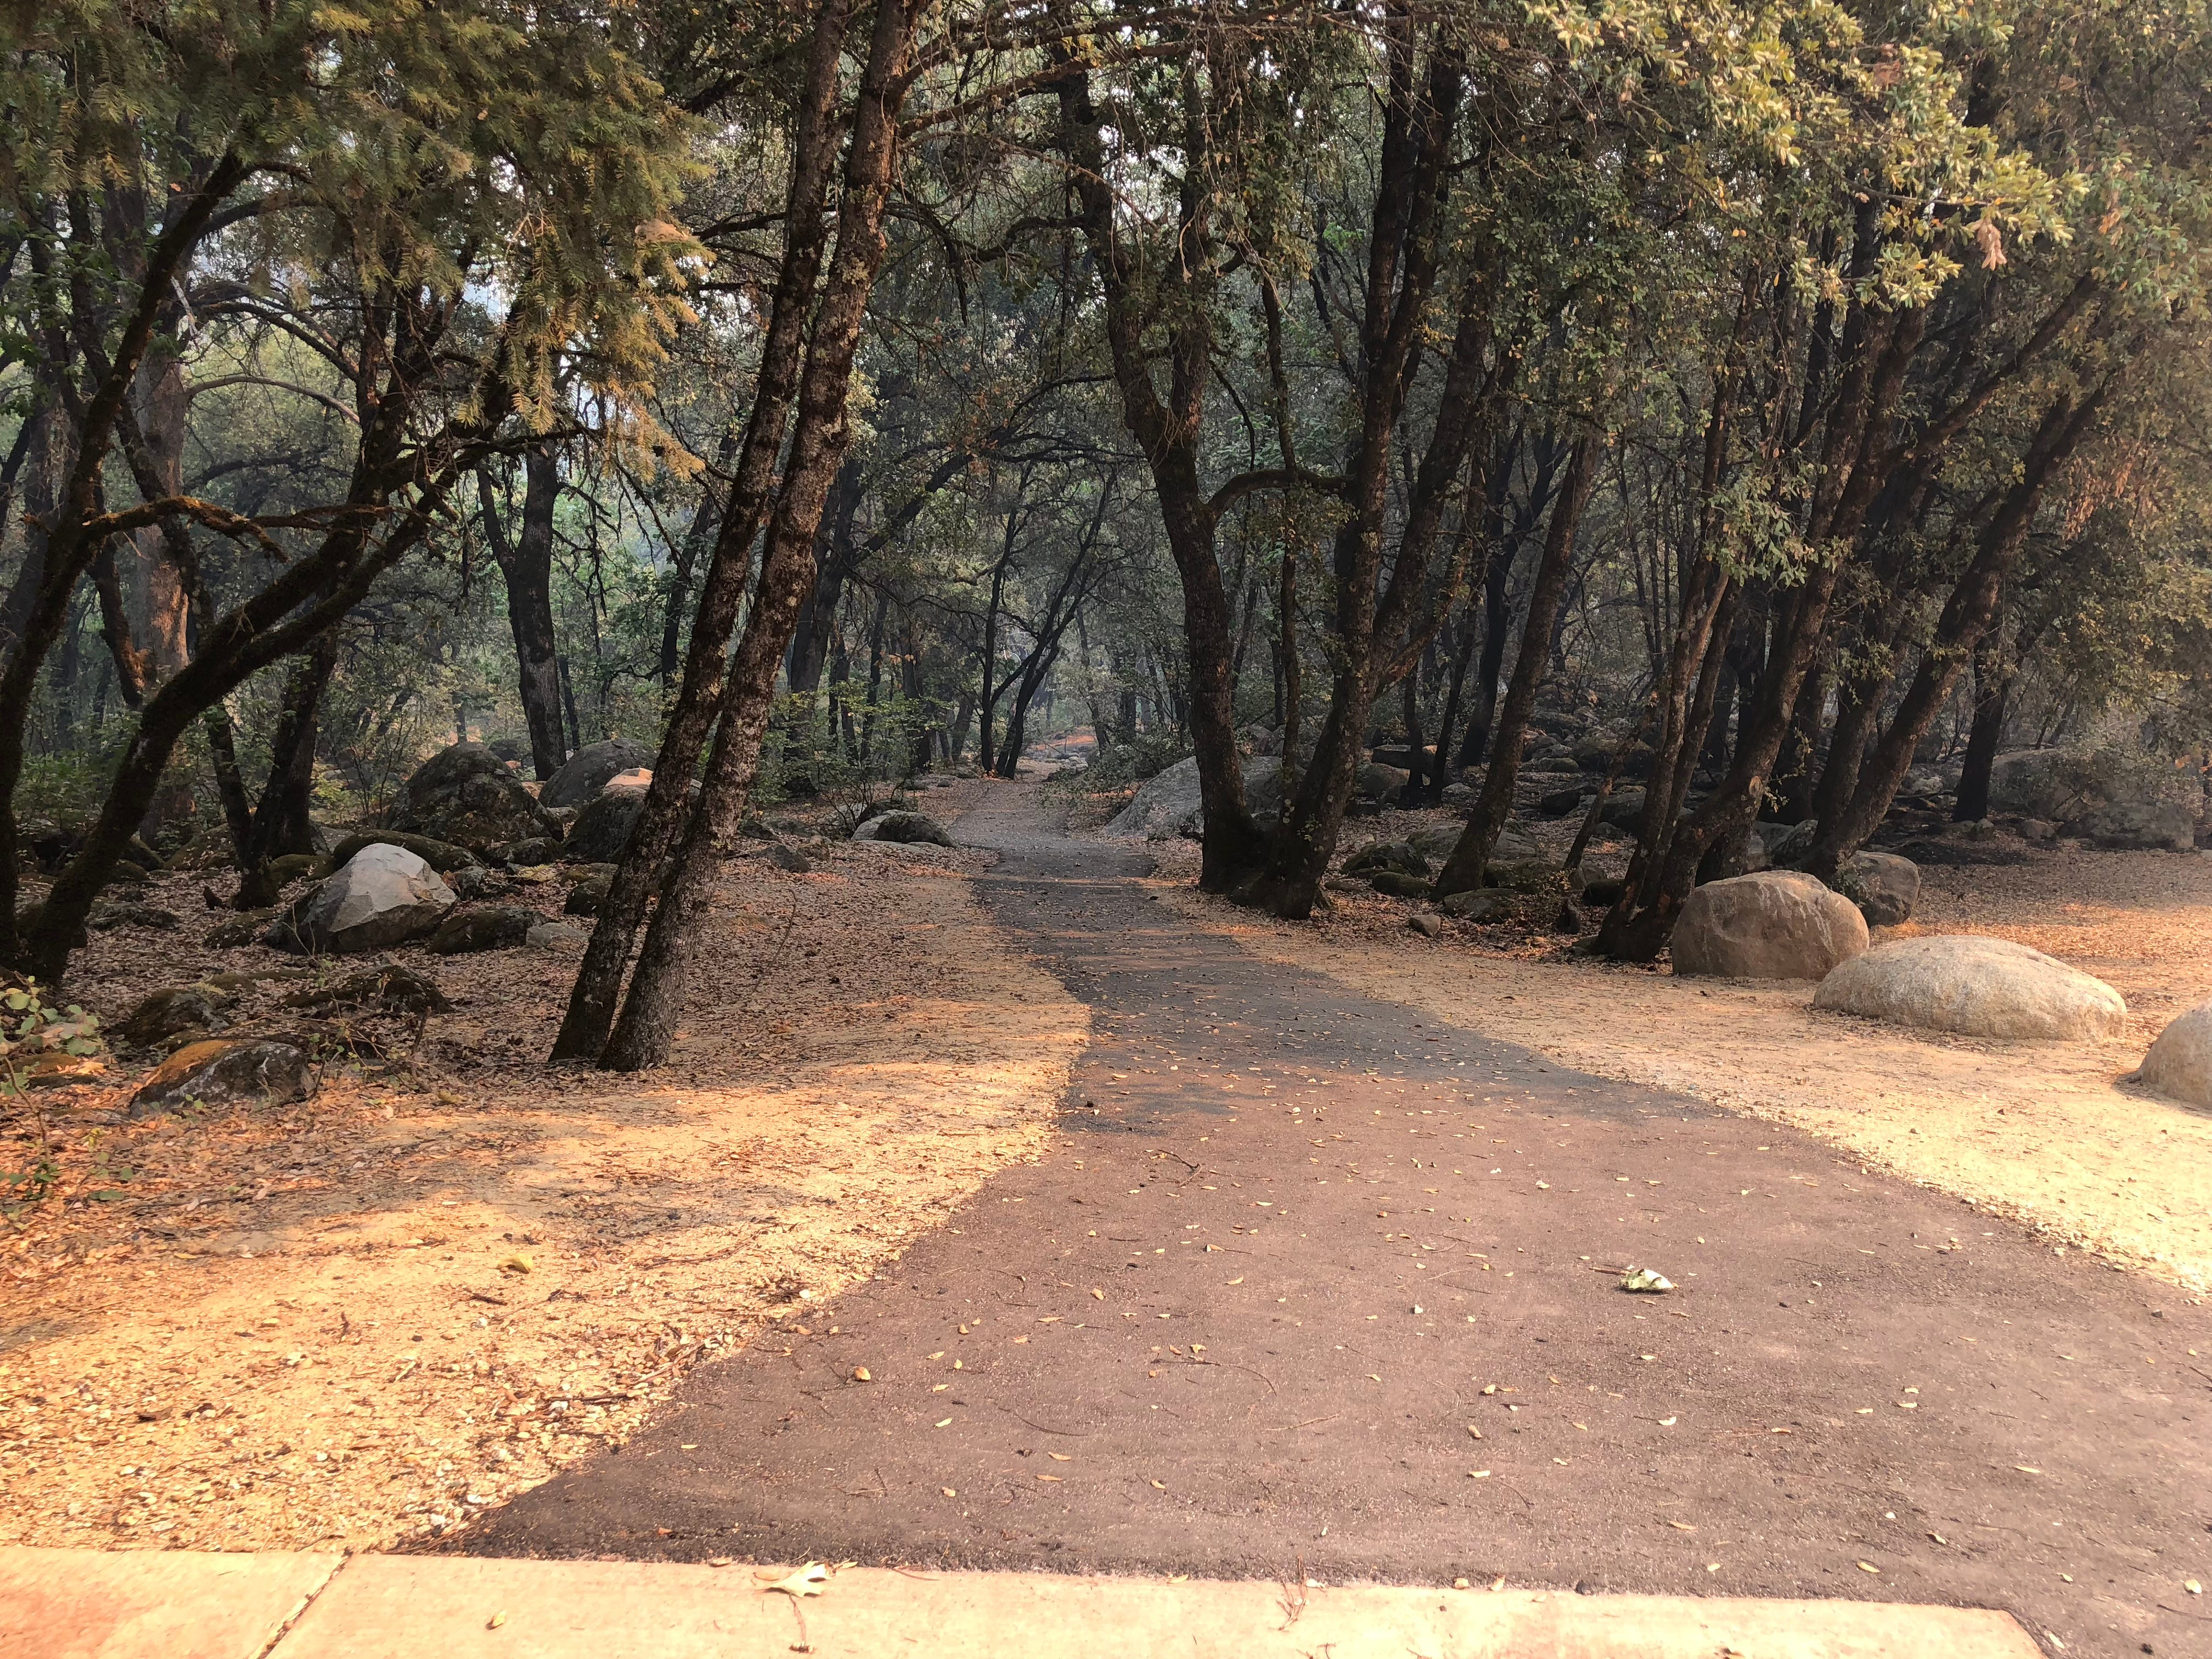 This walking trail by the parking area where South Shore Drive and Brandy Creek Road meet appears to be largely unaffected by the Carr Fire. The area is closed the public, and there are fallen tree branches are on the sides of the road on the way there.